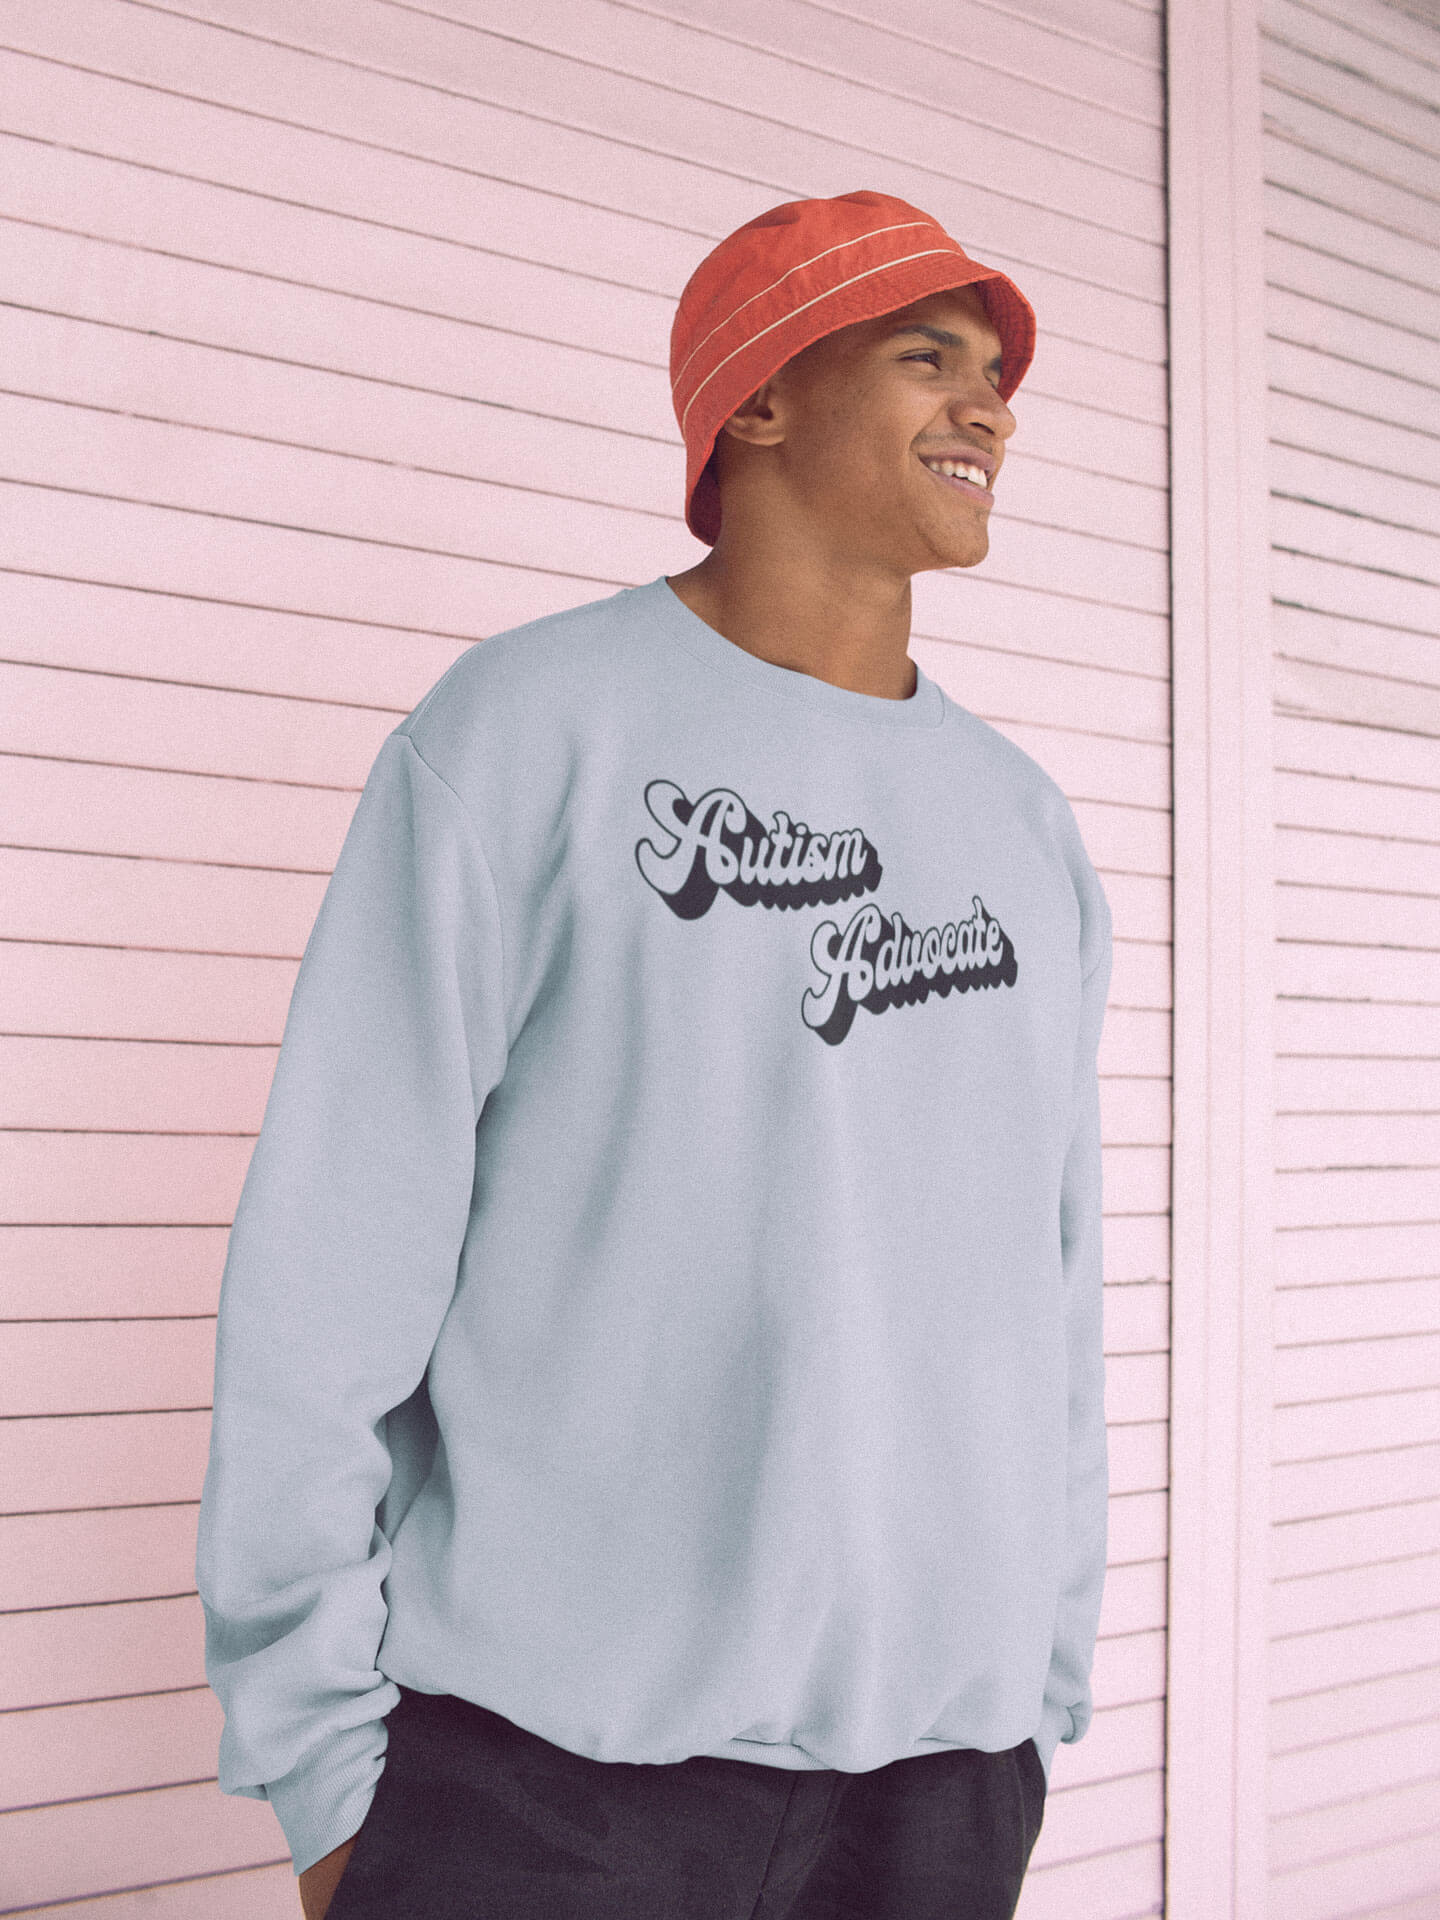 happy man wearing autism advocate sweatshirt standing against a pink metal wall